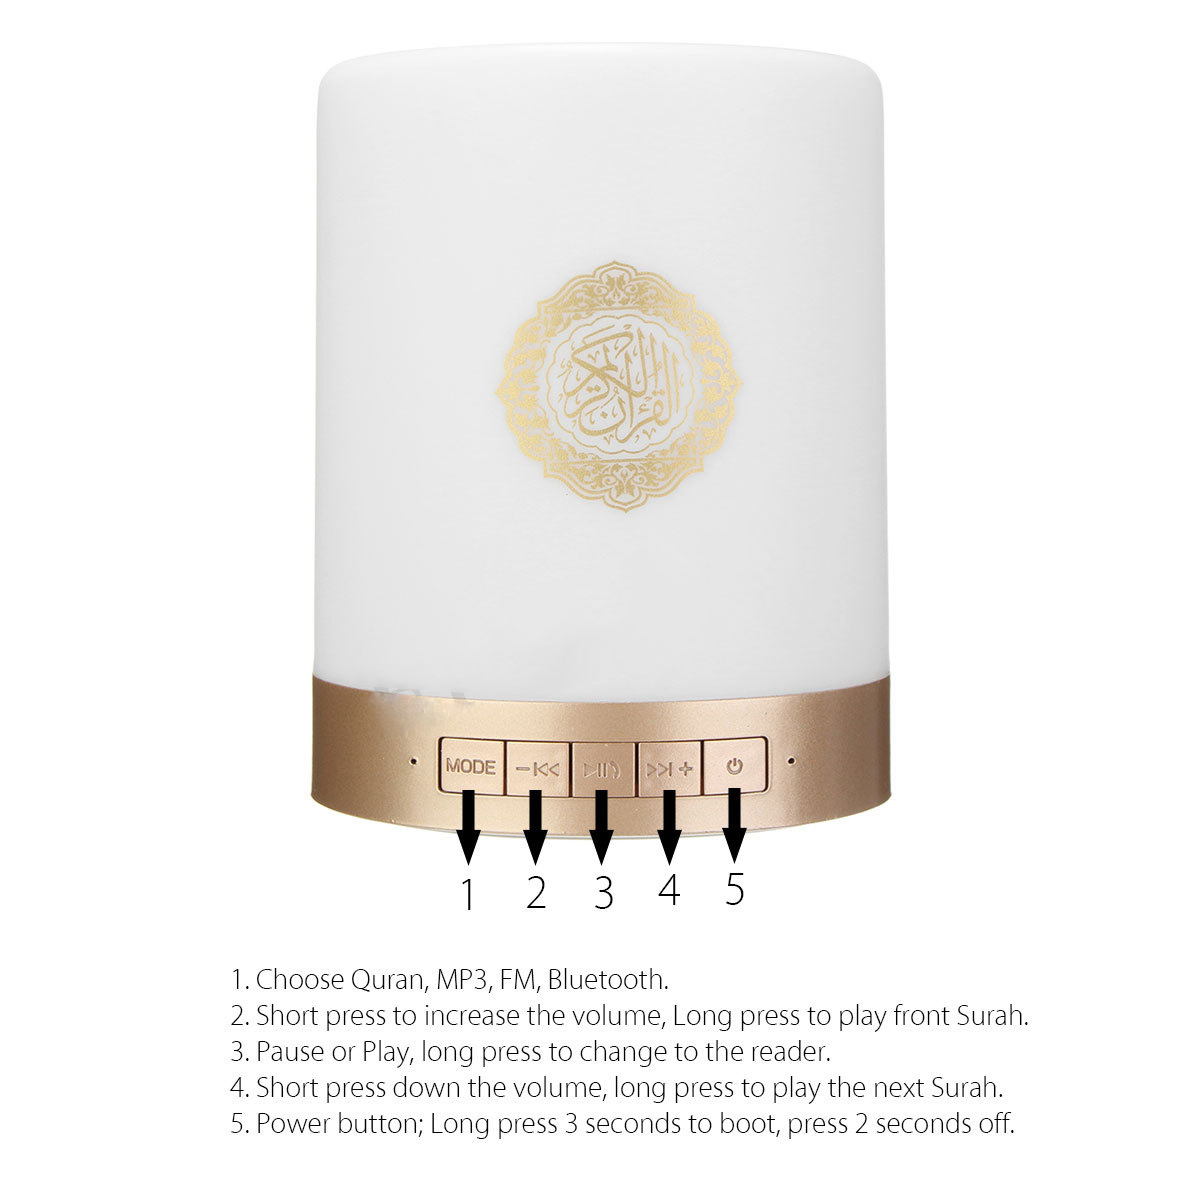 Quran Portable bluetooth Speaker Remote Control LED Touch Lamp TF Card FM Radio Headset Speaker